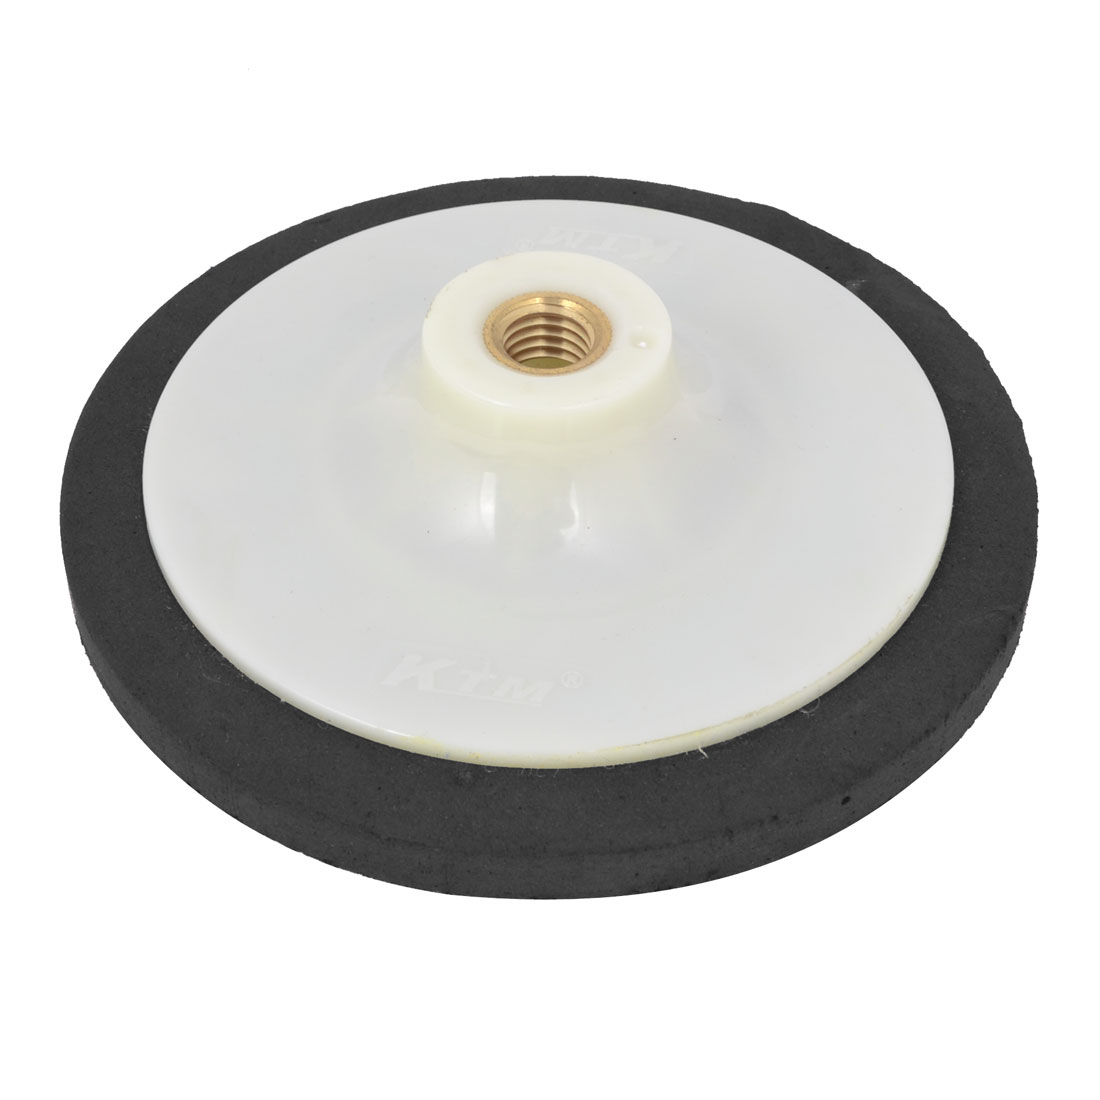 140mm x 40mm Round Polishing Waxing Wheel Bonnet White Black for Car Buffing